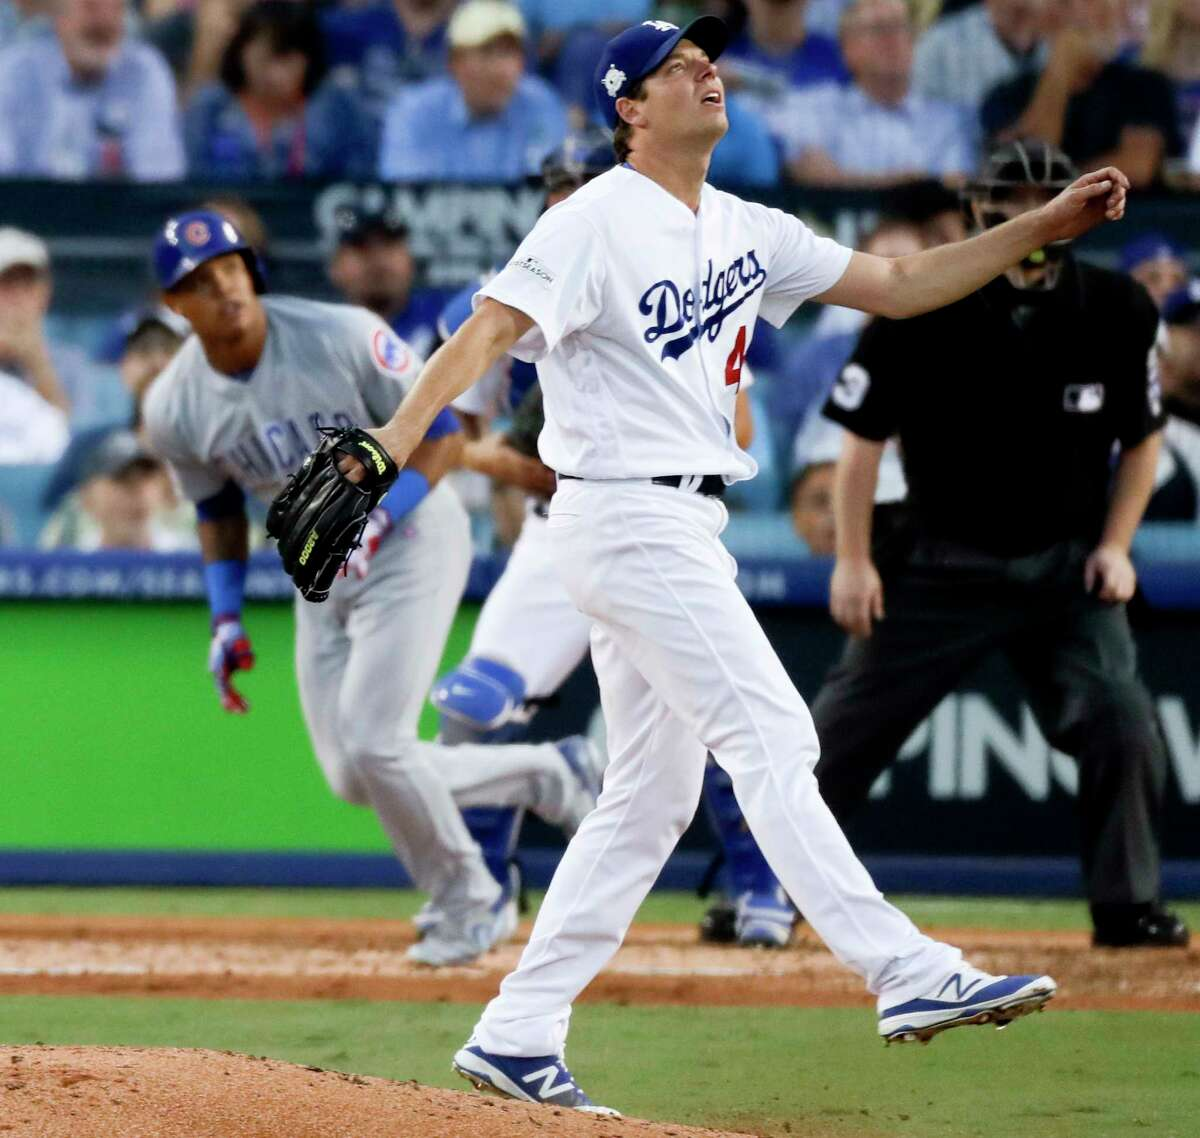 Chicago Cubs' Addison Russell, left, watches his home run off Los Angeles Dodgers starting pitcher Rich Hill during the fifth inning of Game 2 of baseball's National League Championship Series in Los Angeles, Sunday, Oct. 15, 2017. (AP Photo/Alex Gallardo)